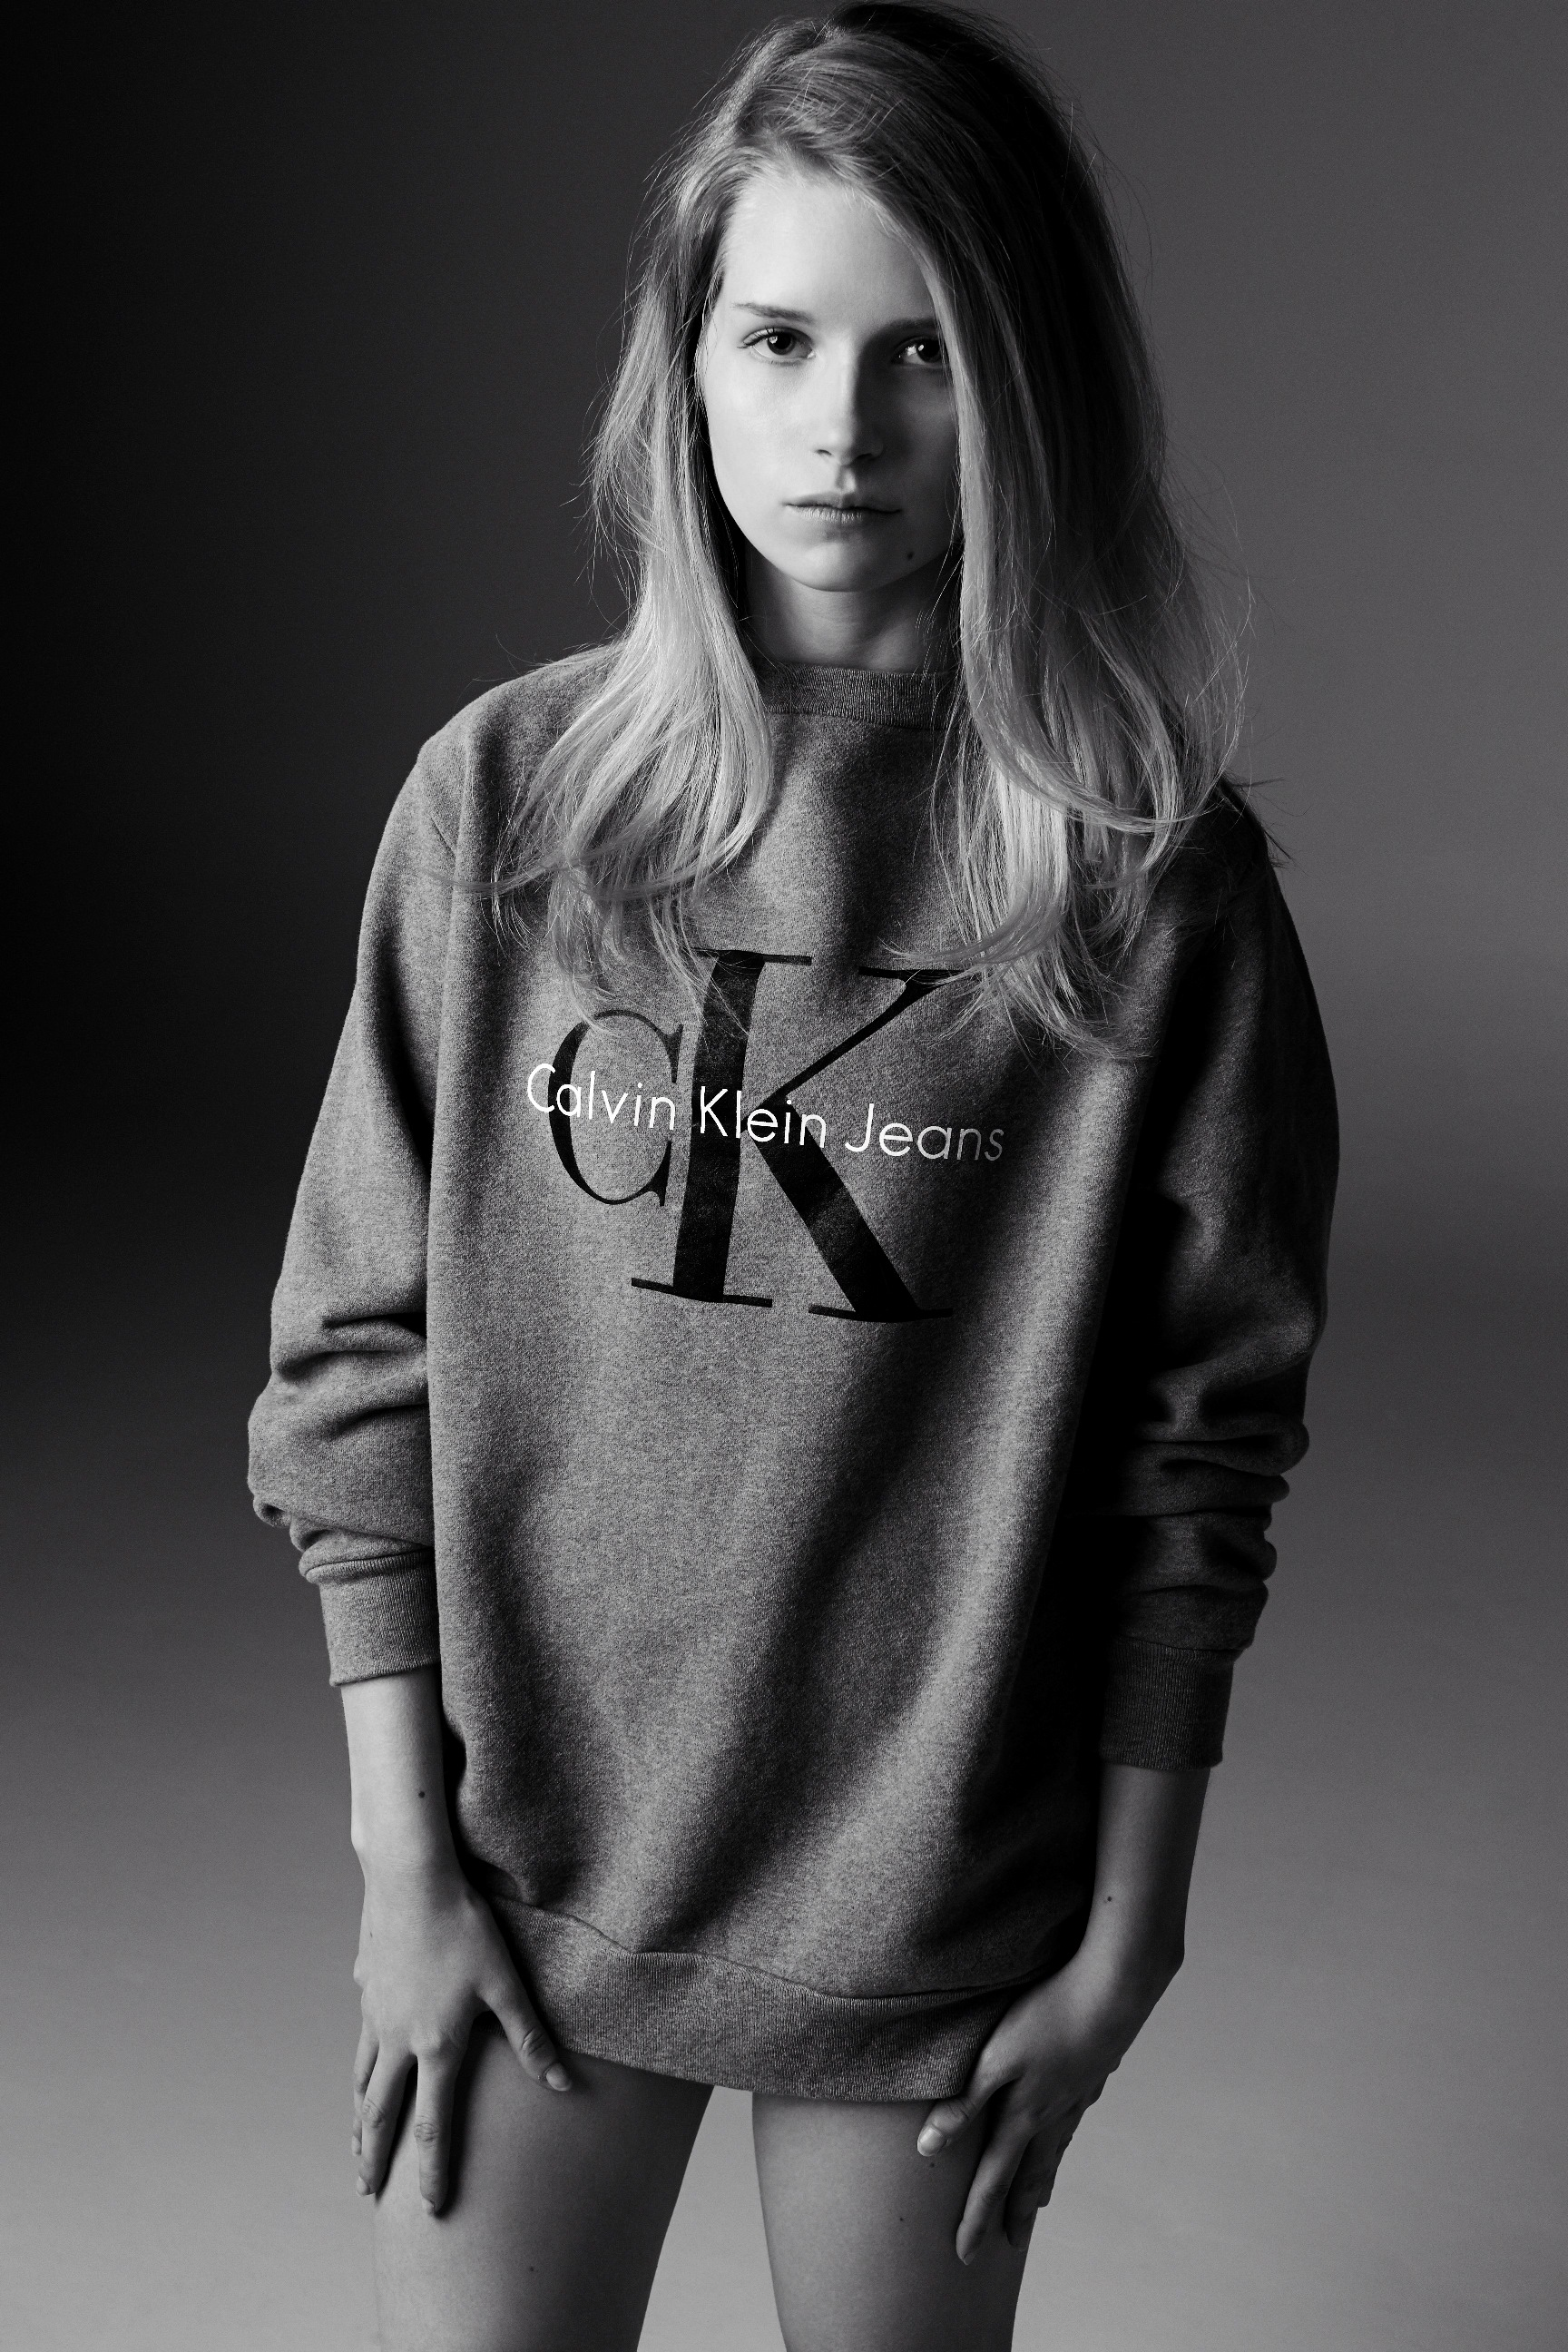 Calvin Klein , King of the 90's, brings the sweatshirt back to its glory days in his show at NYFW14